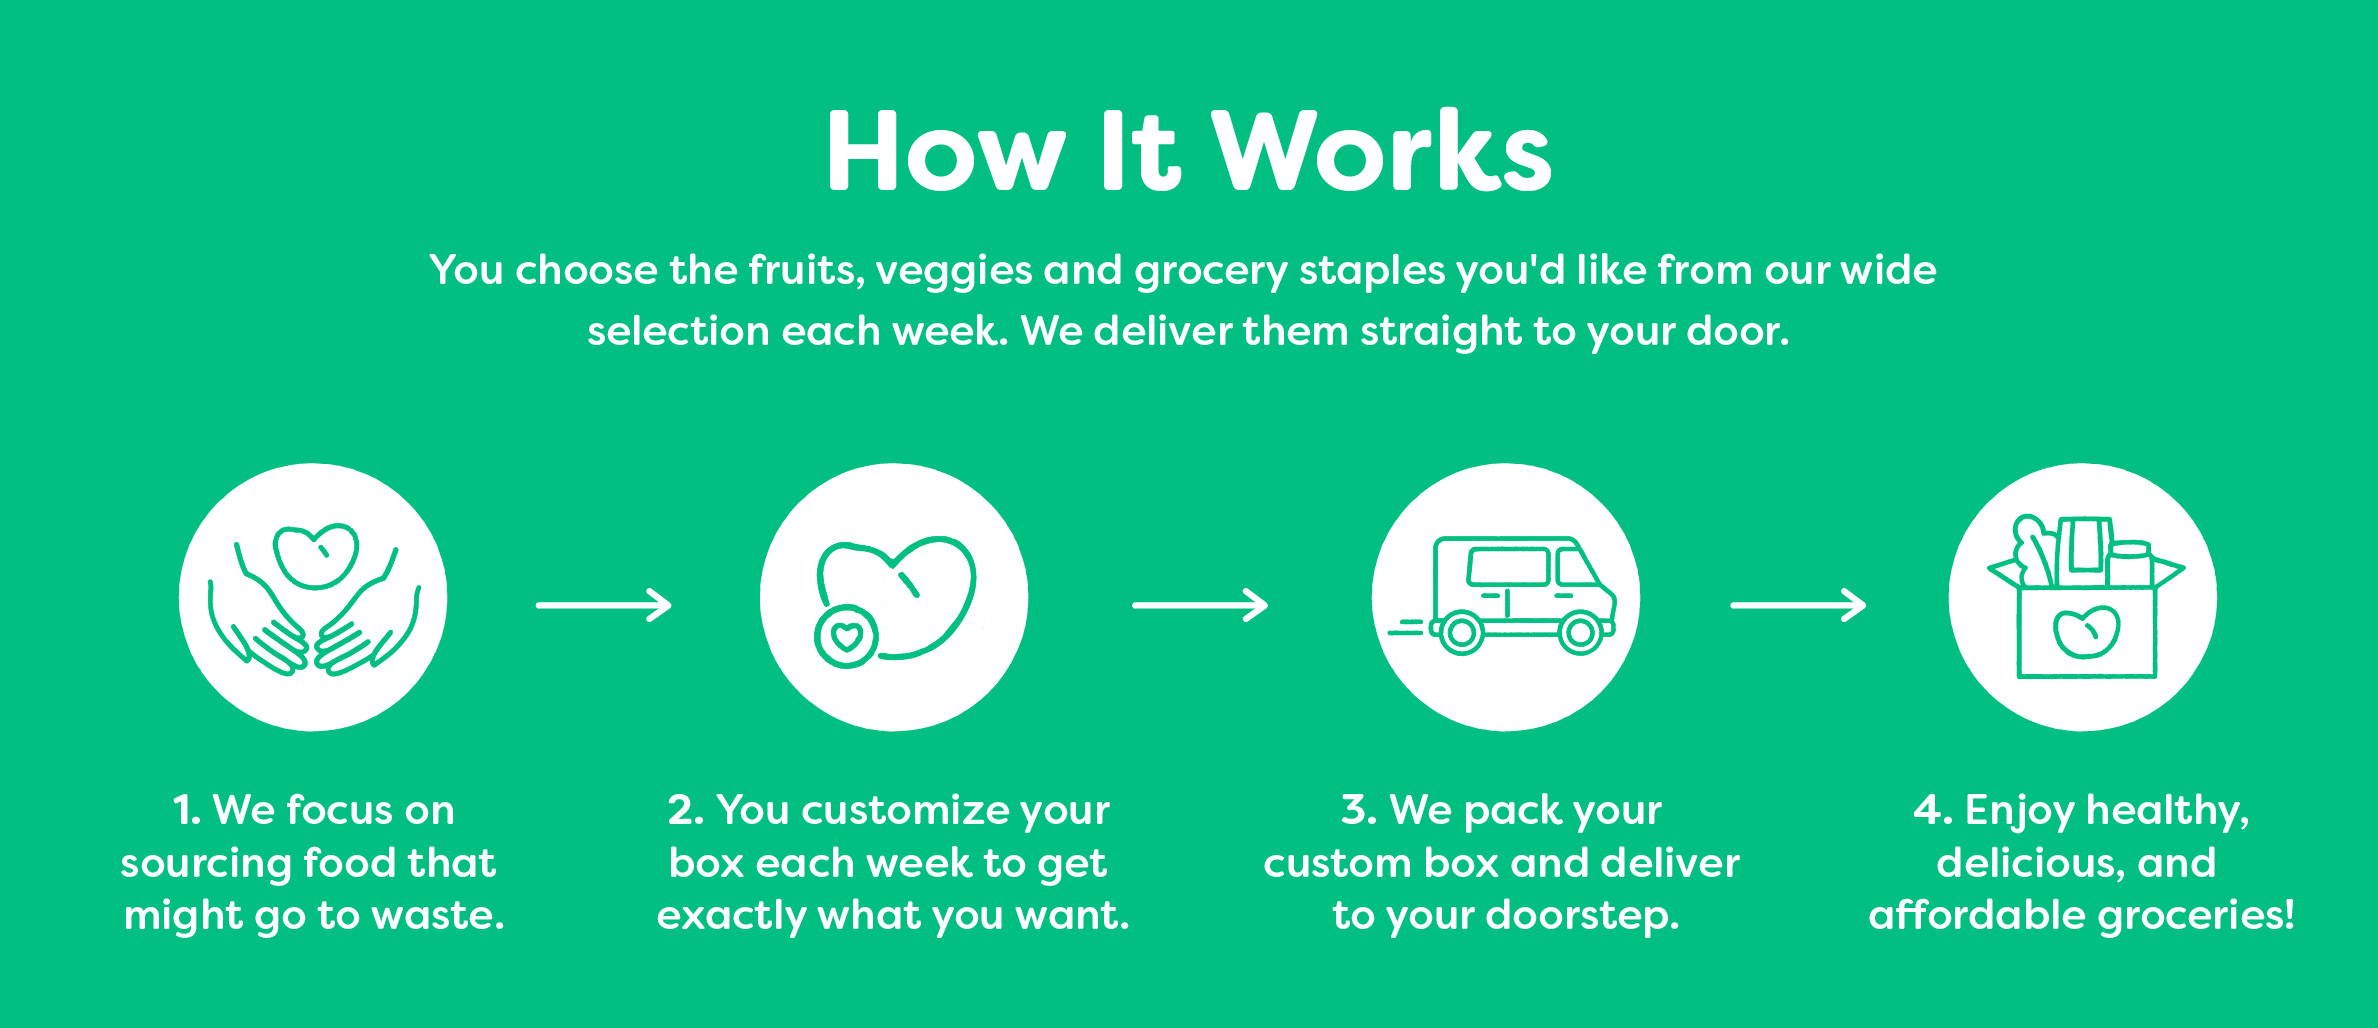 Imperfect Produce | Grocery Delivery for Organic Food, Fresh